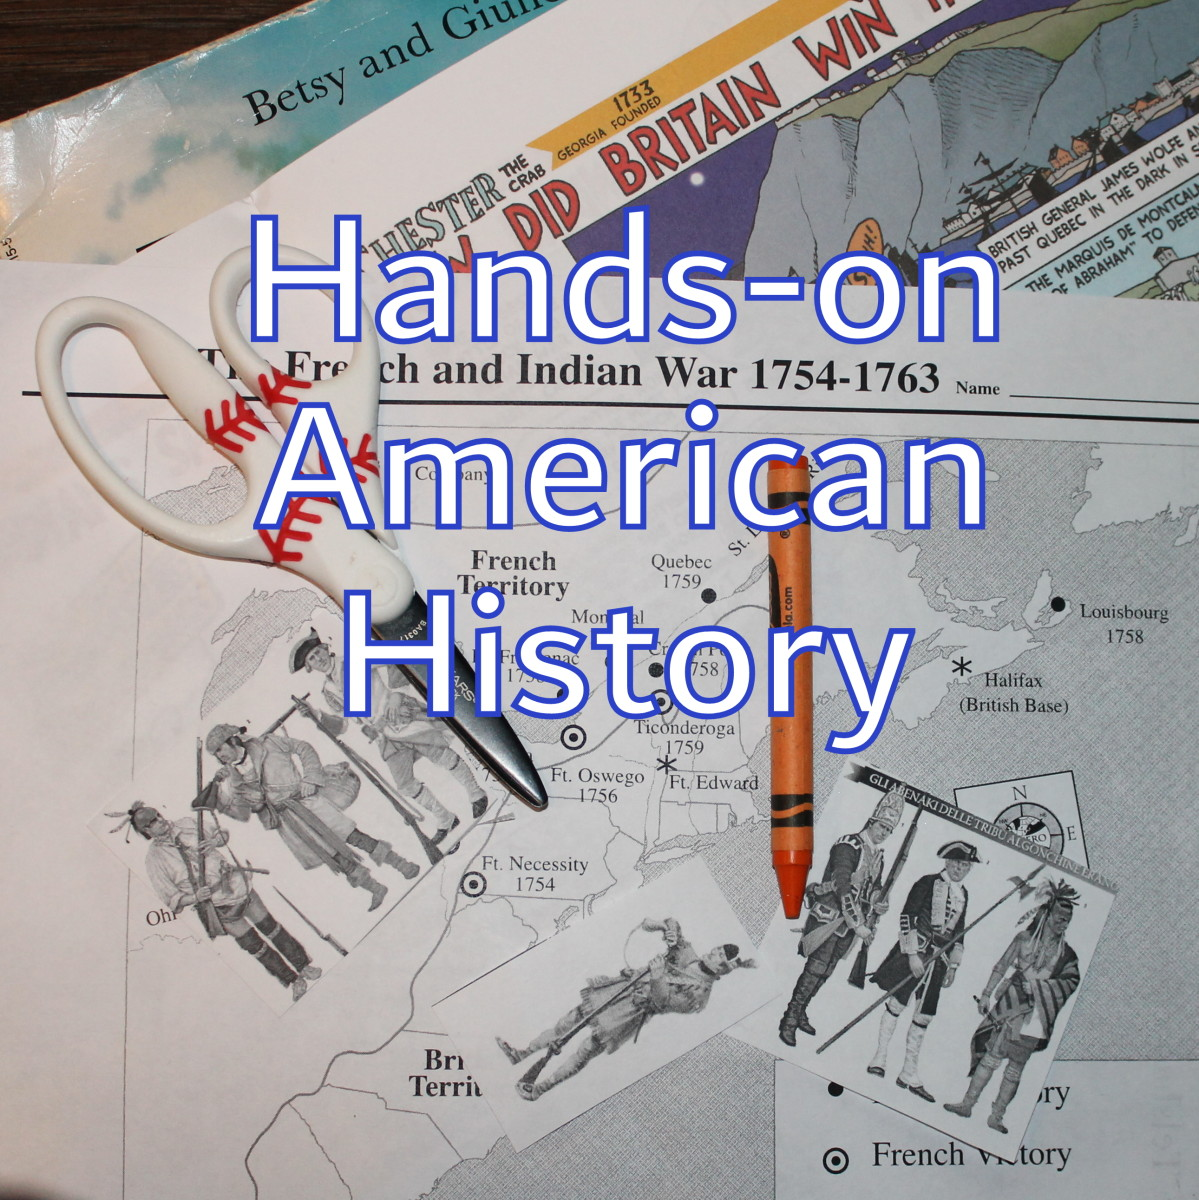 Hands-On American History Lesson for Kids: French and Indian War